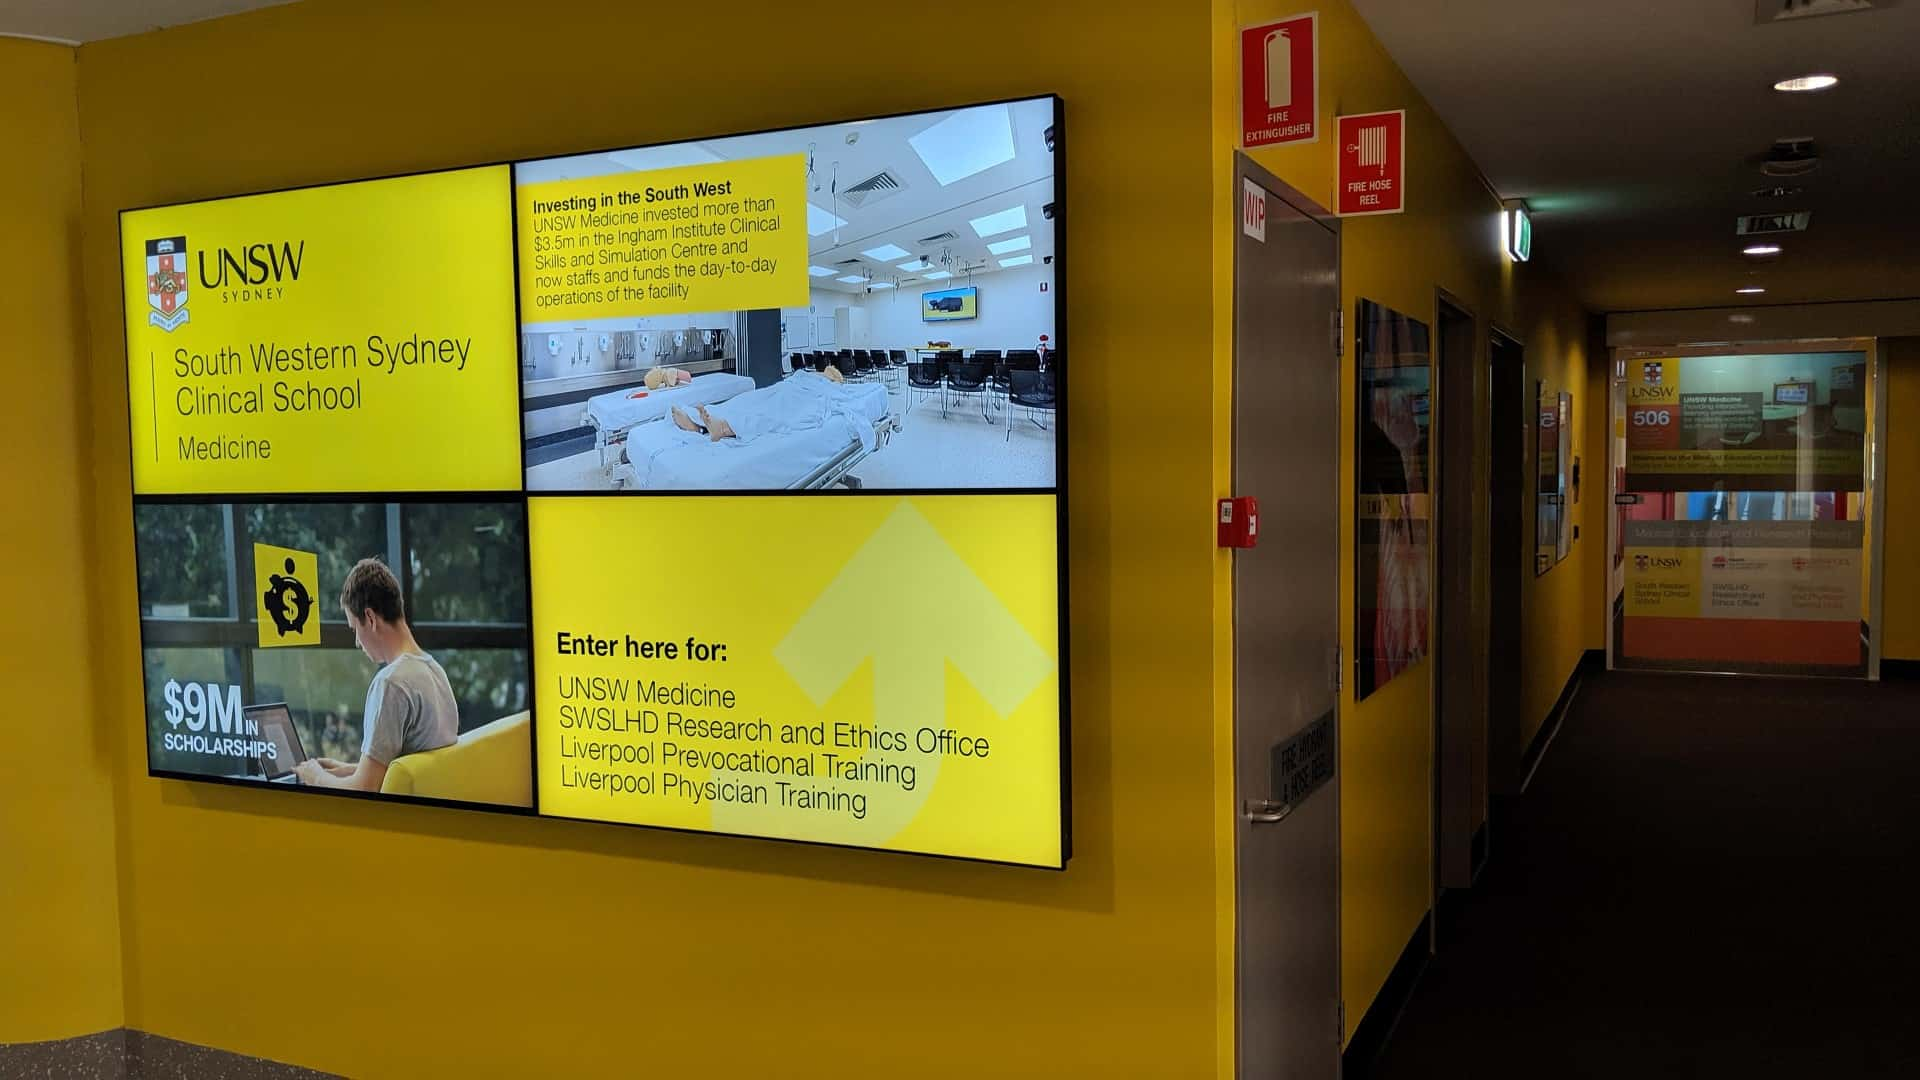 Digital Signage – UNSW Glass Projection